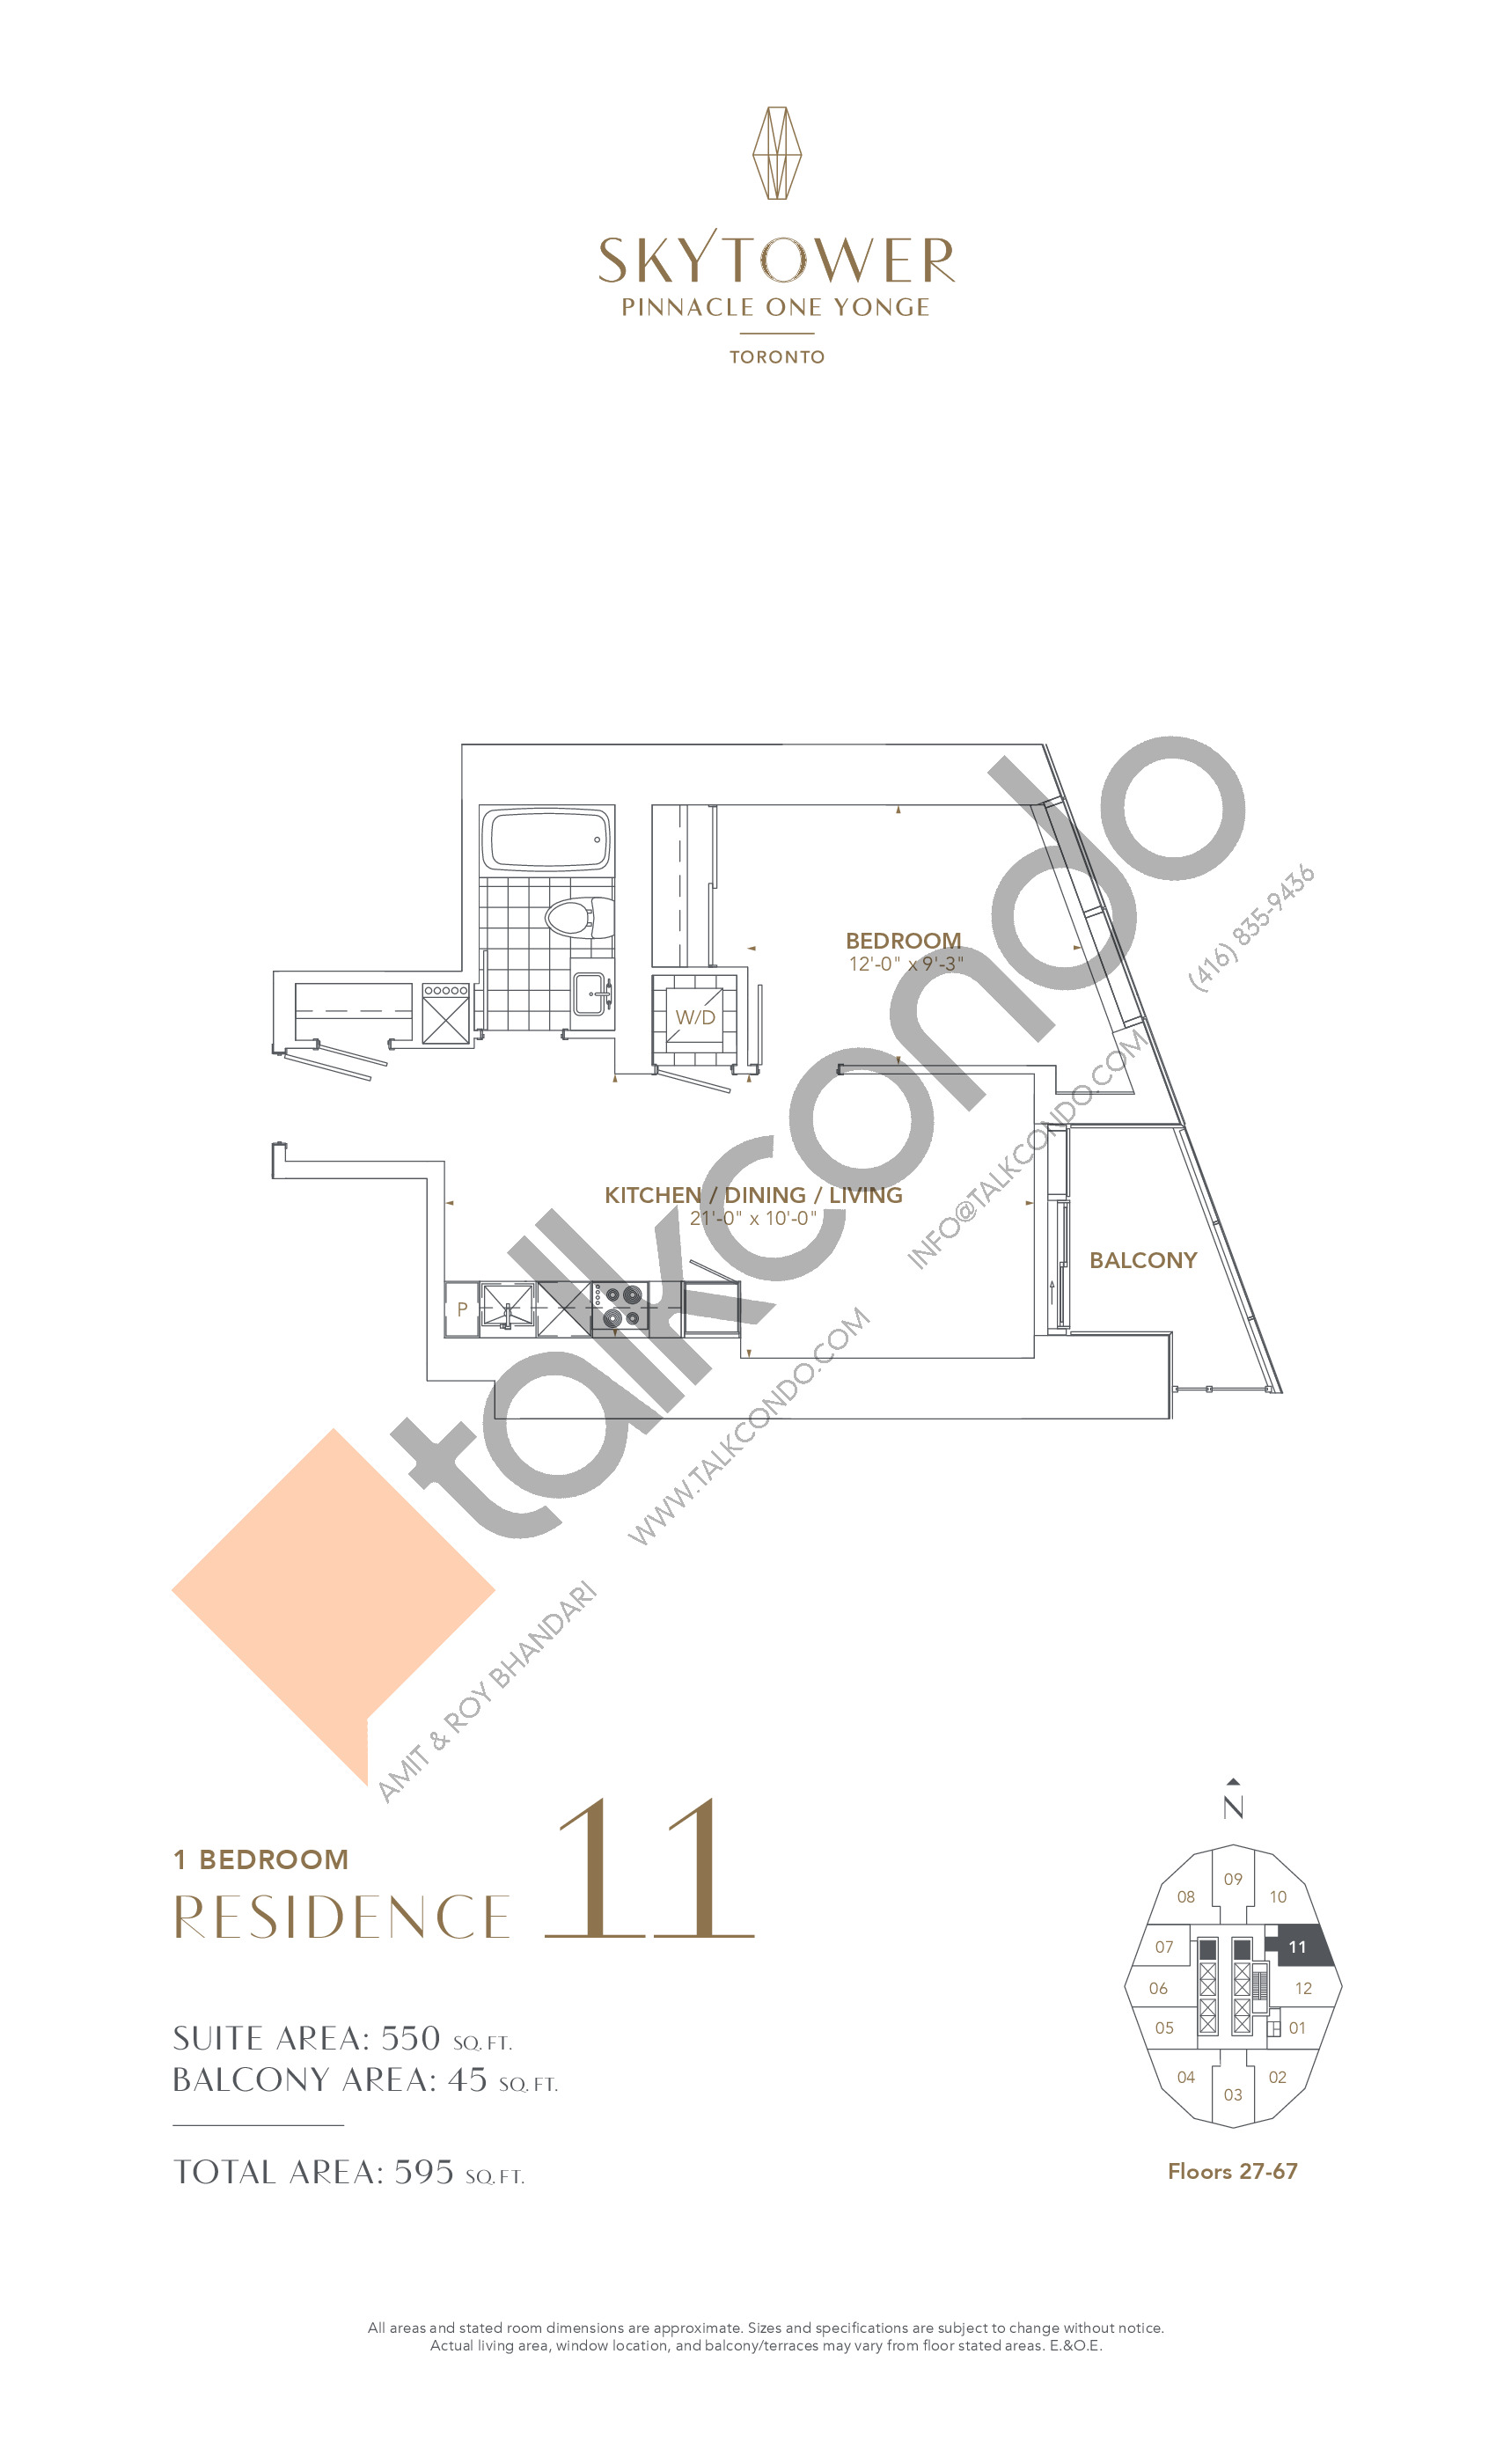 Residence 11 Floor Plan at SkyTower at Pinnacle One Yonge - 550 sq.ft